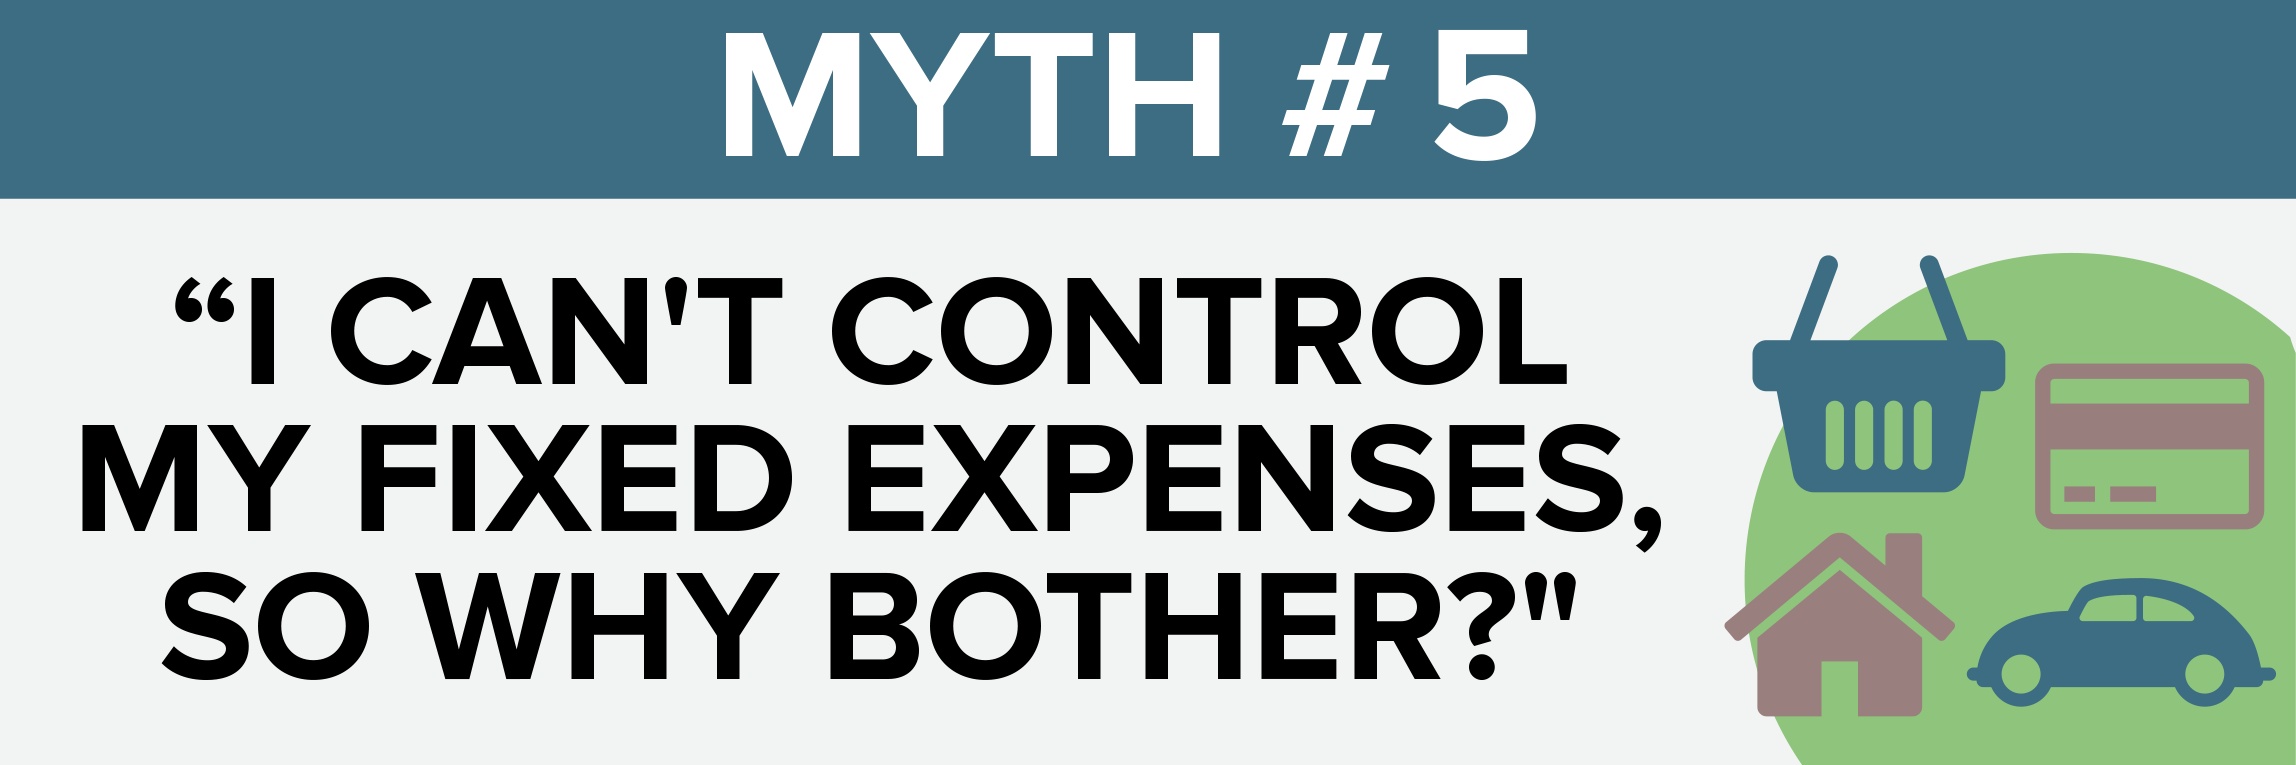 Myth #5 I can't control my fixed expenses